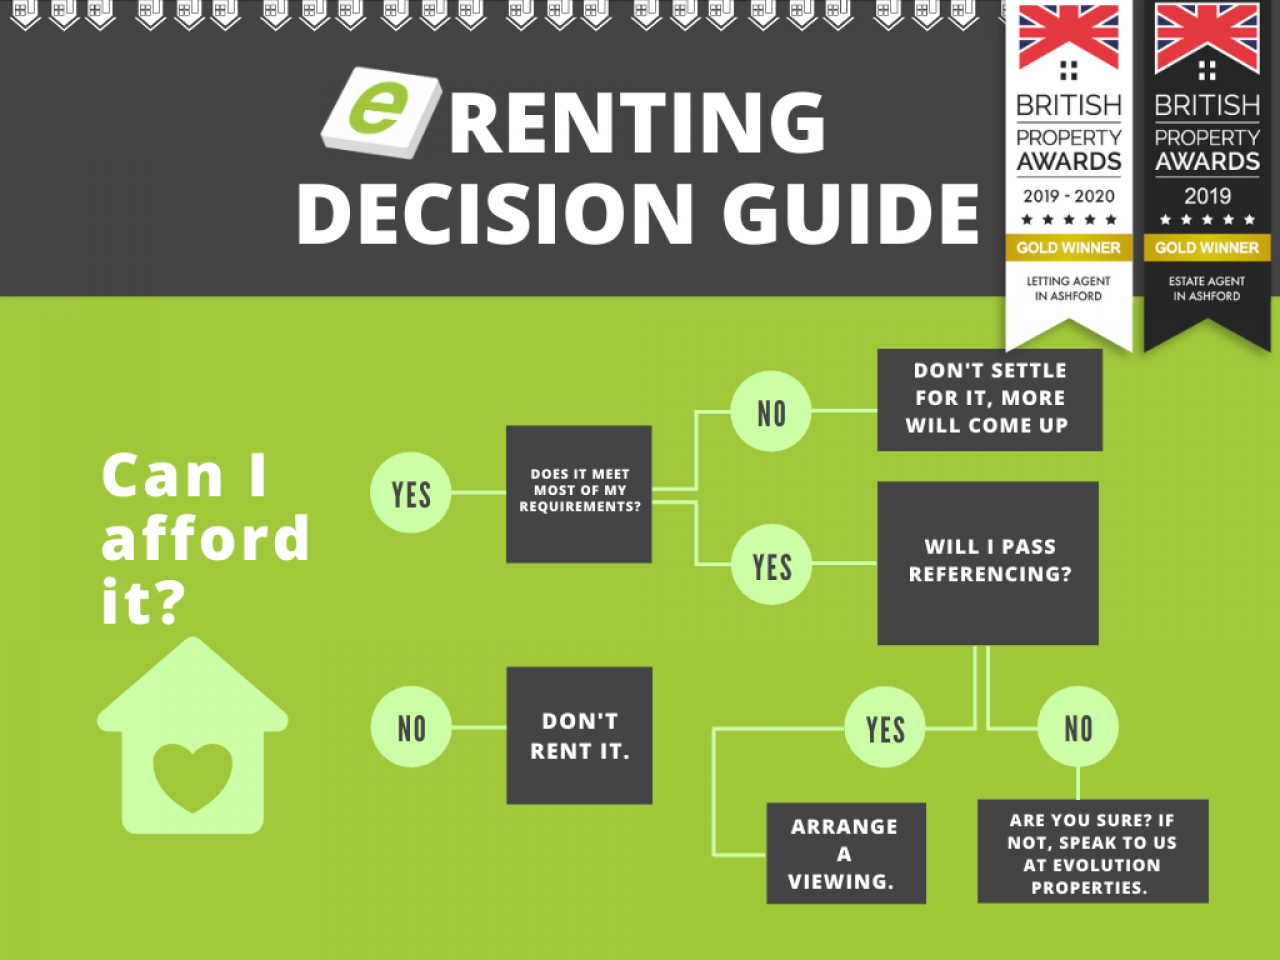 >Renting decision guide